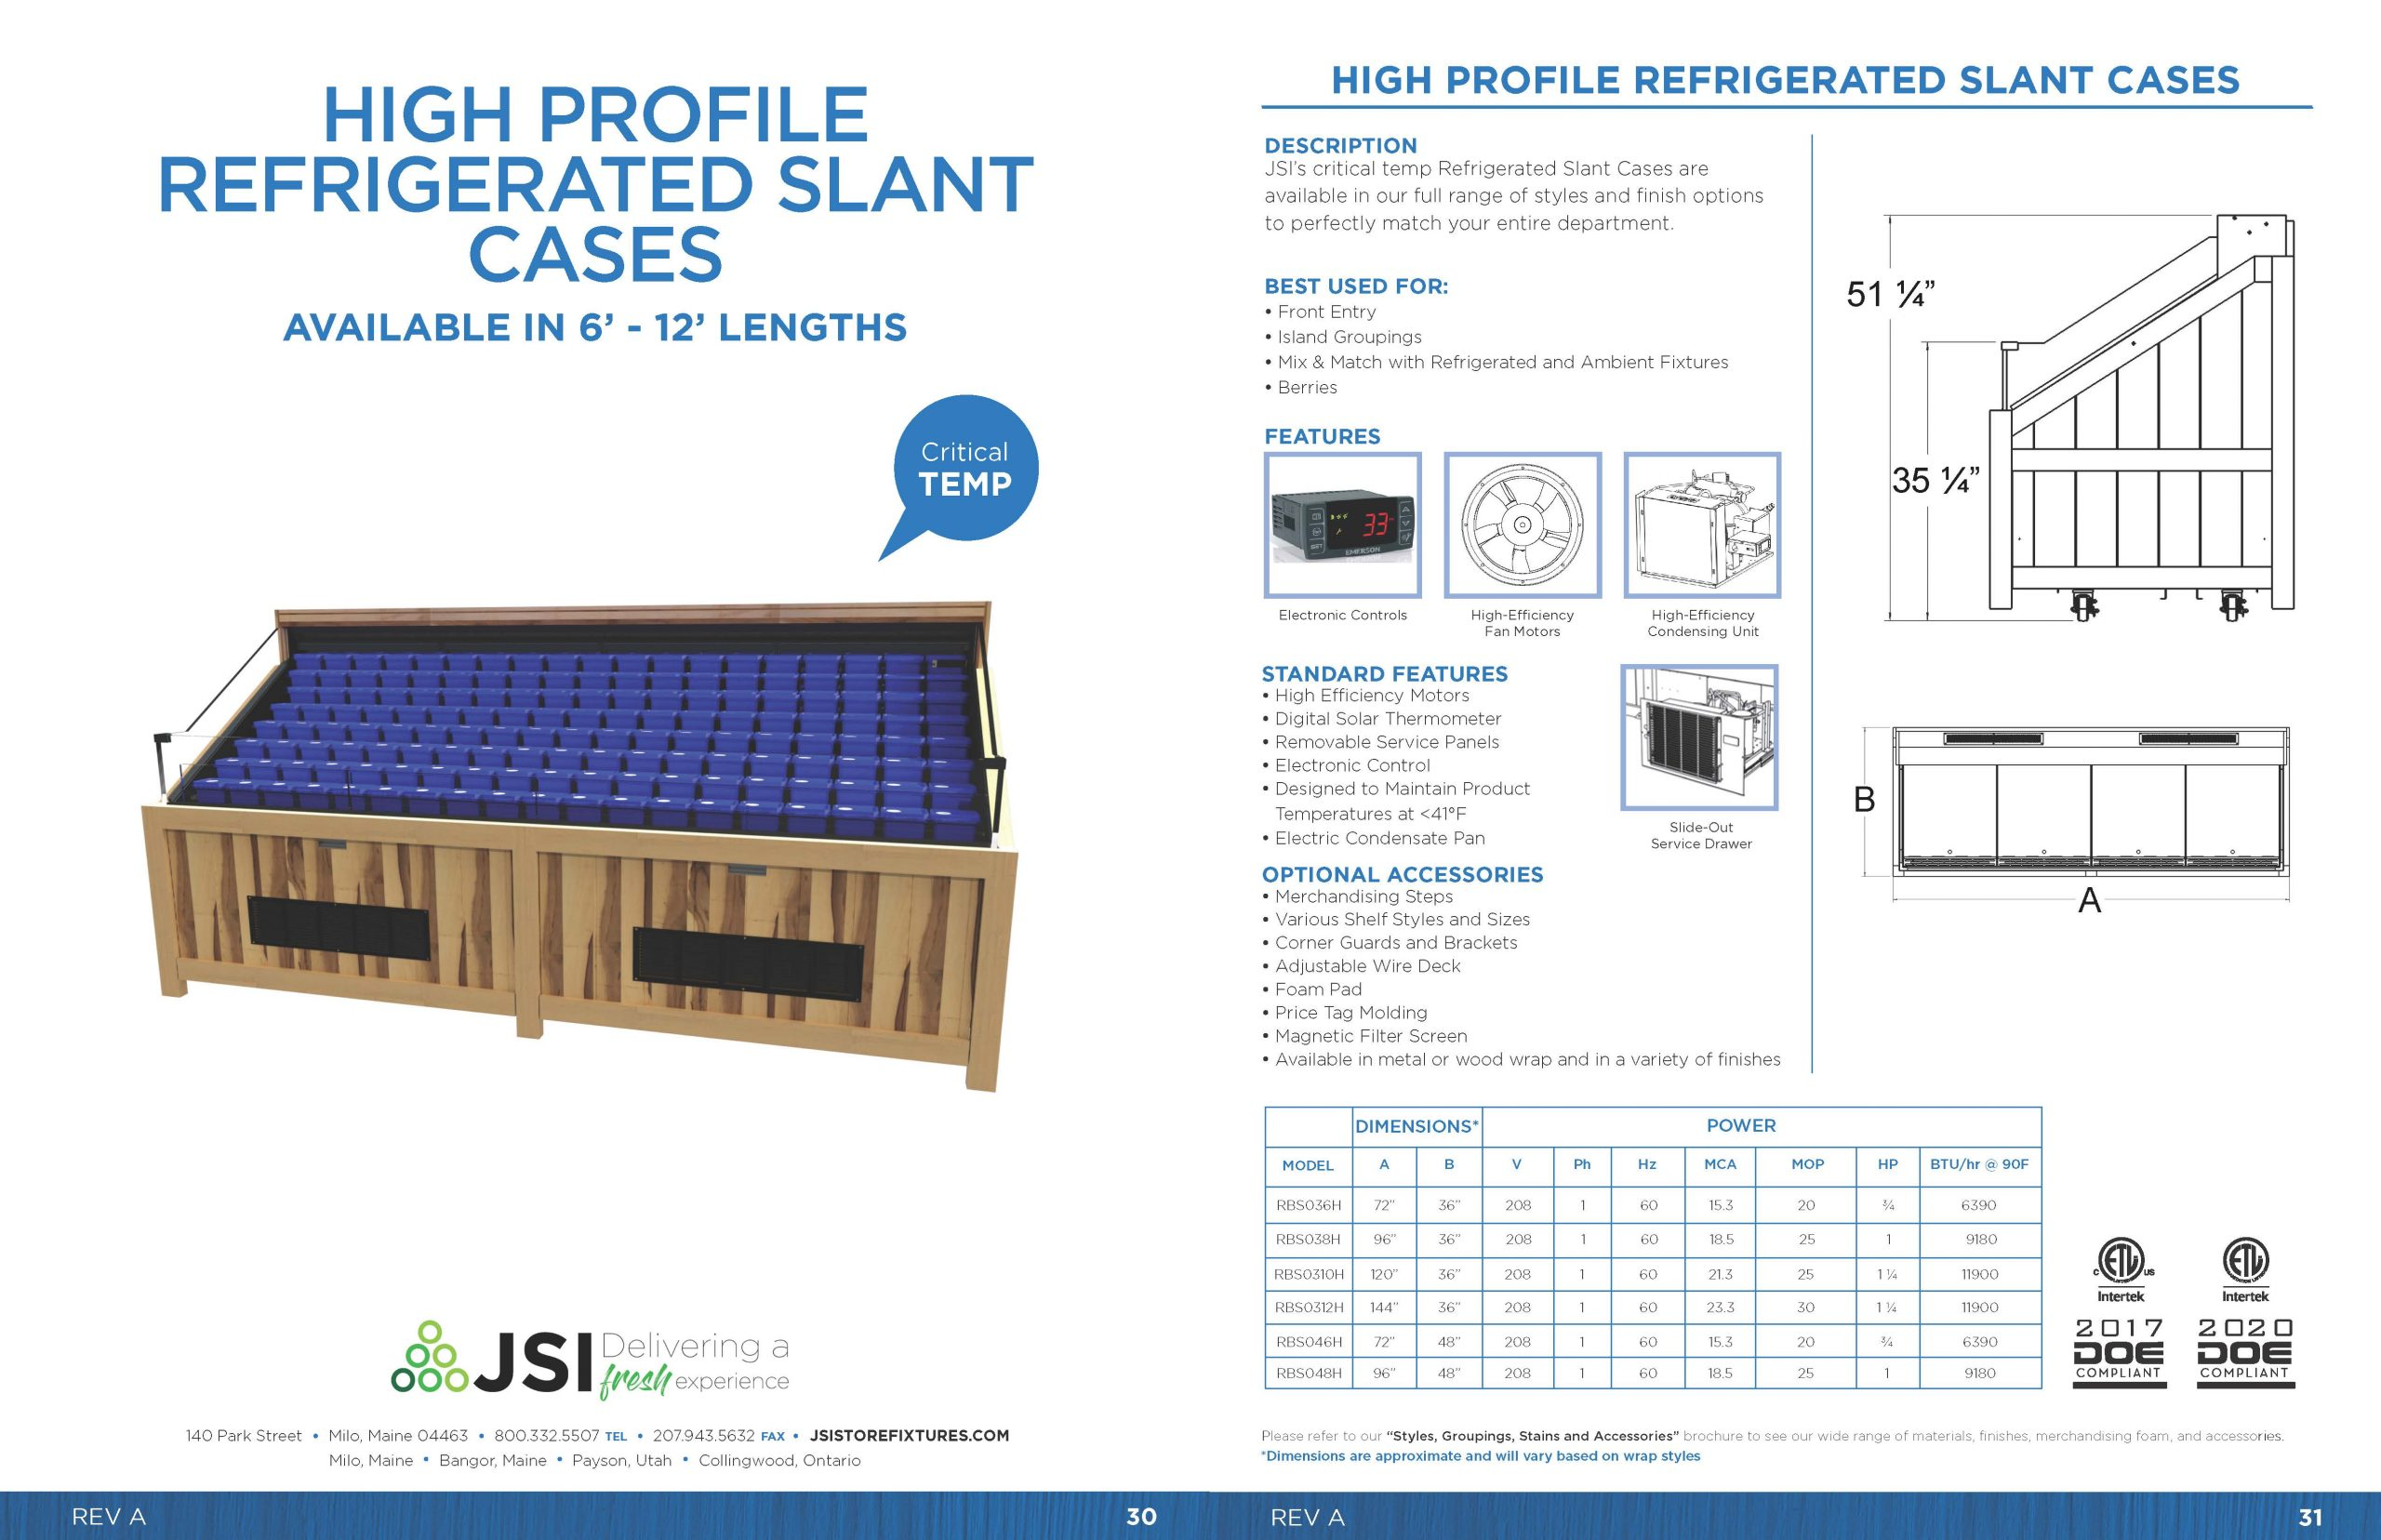 High Profile Refrigerated Slant Cases_6ft-12ft